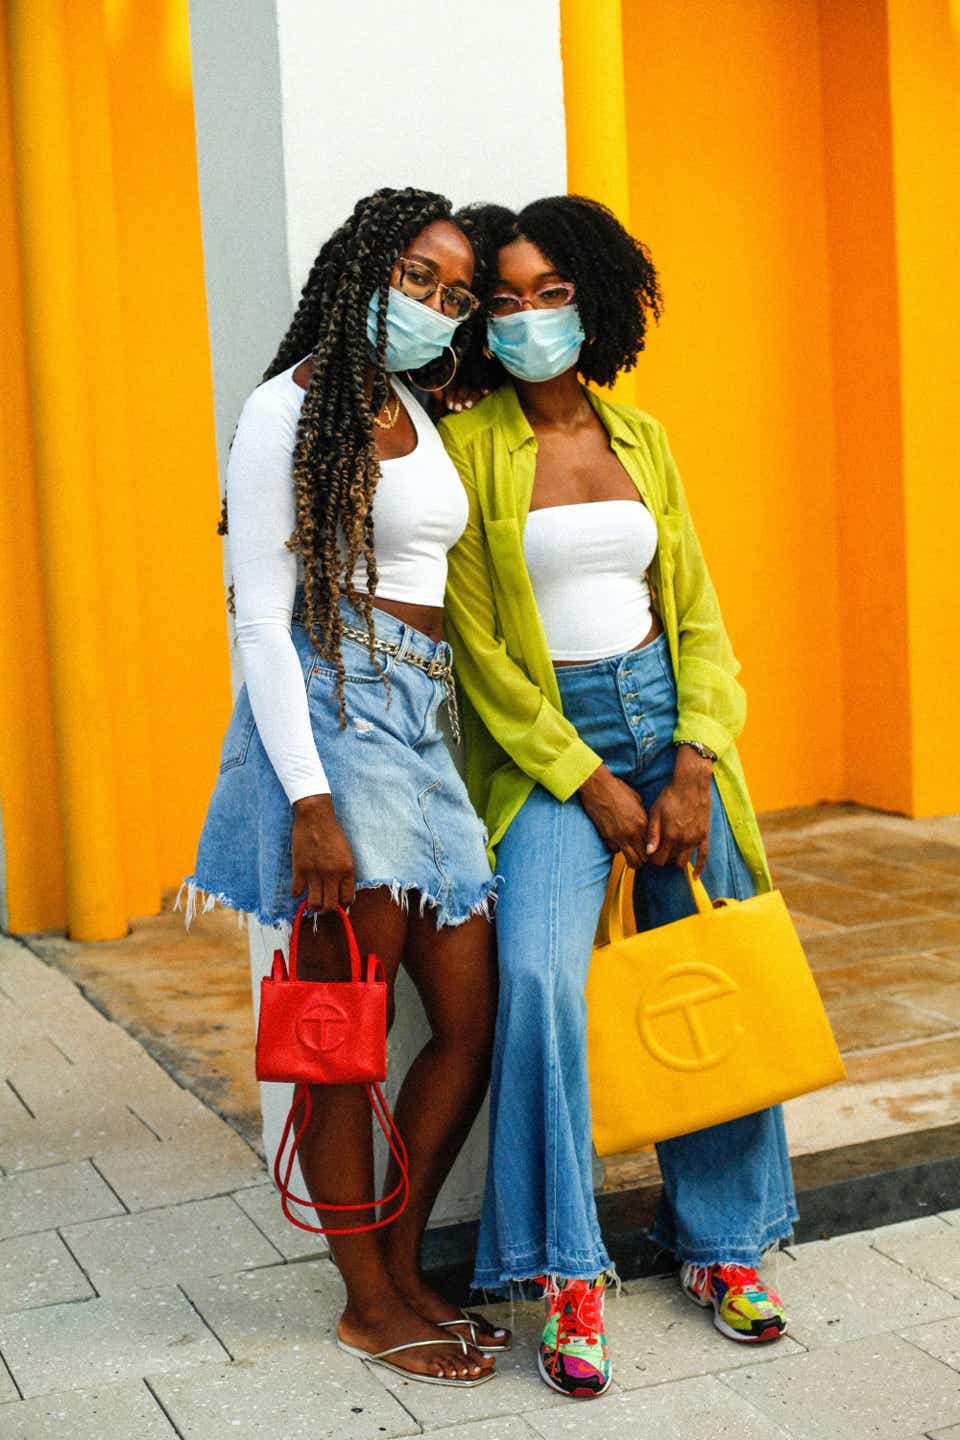 Kristi and Alexandra pose side-by-side with matching Telfar bags, Kristi's a red mini bag and Alexandra's a yellow tote. They're both wearing surgical masks with white tops and jeans.